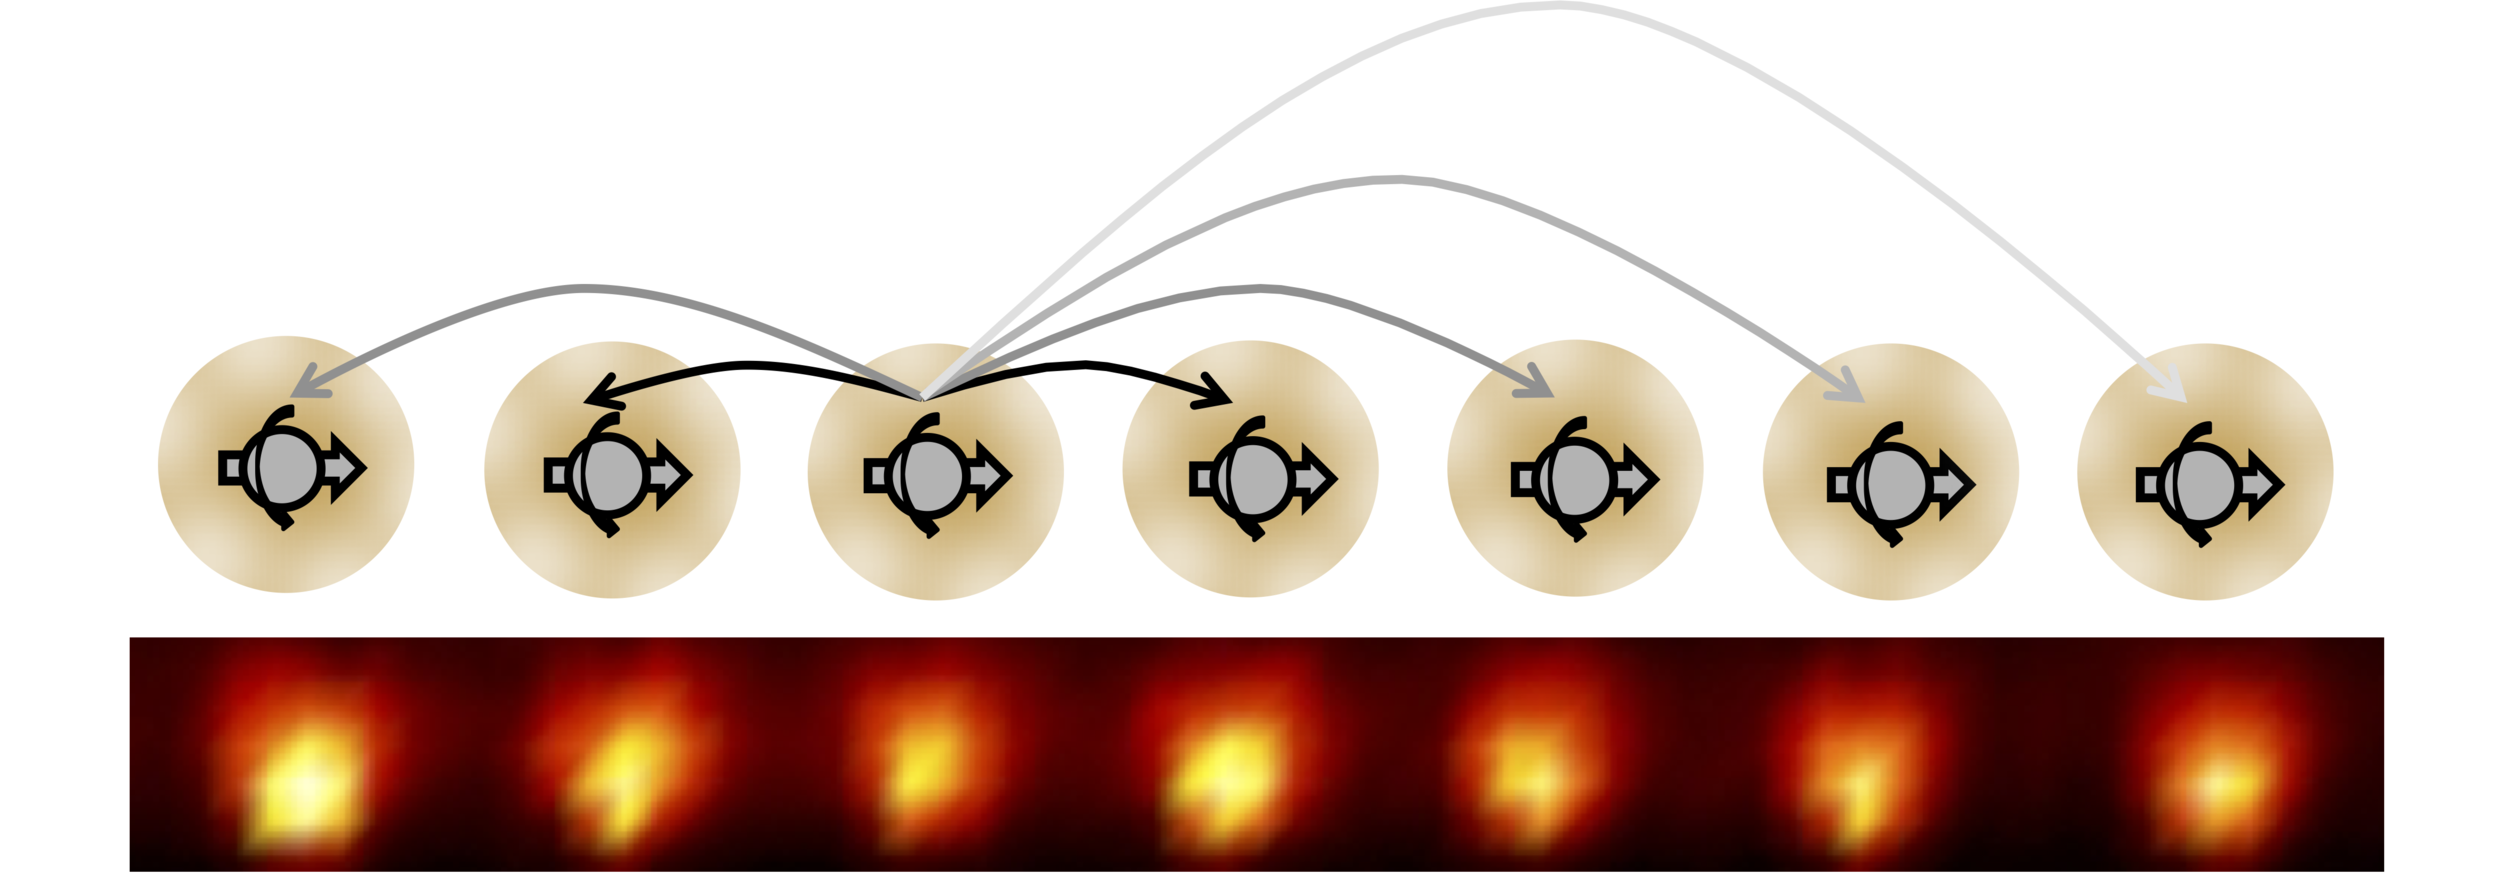 Discrete Time Crystal in Trapped Ions and NVs